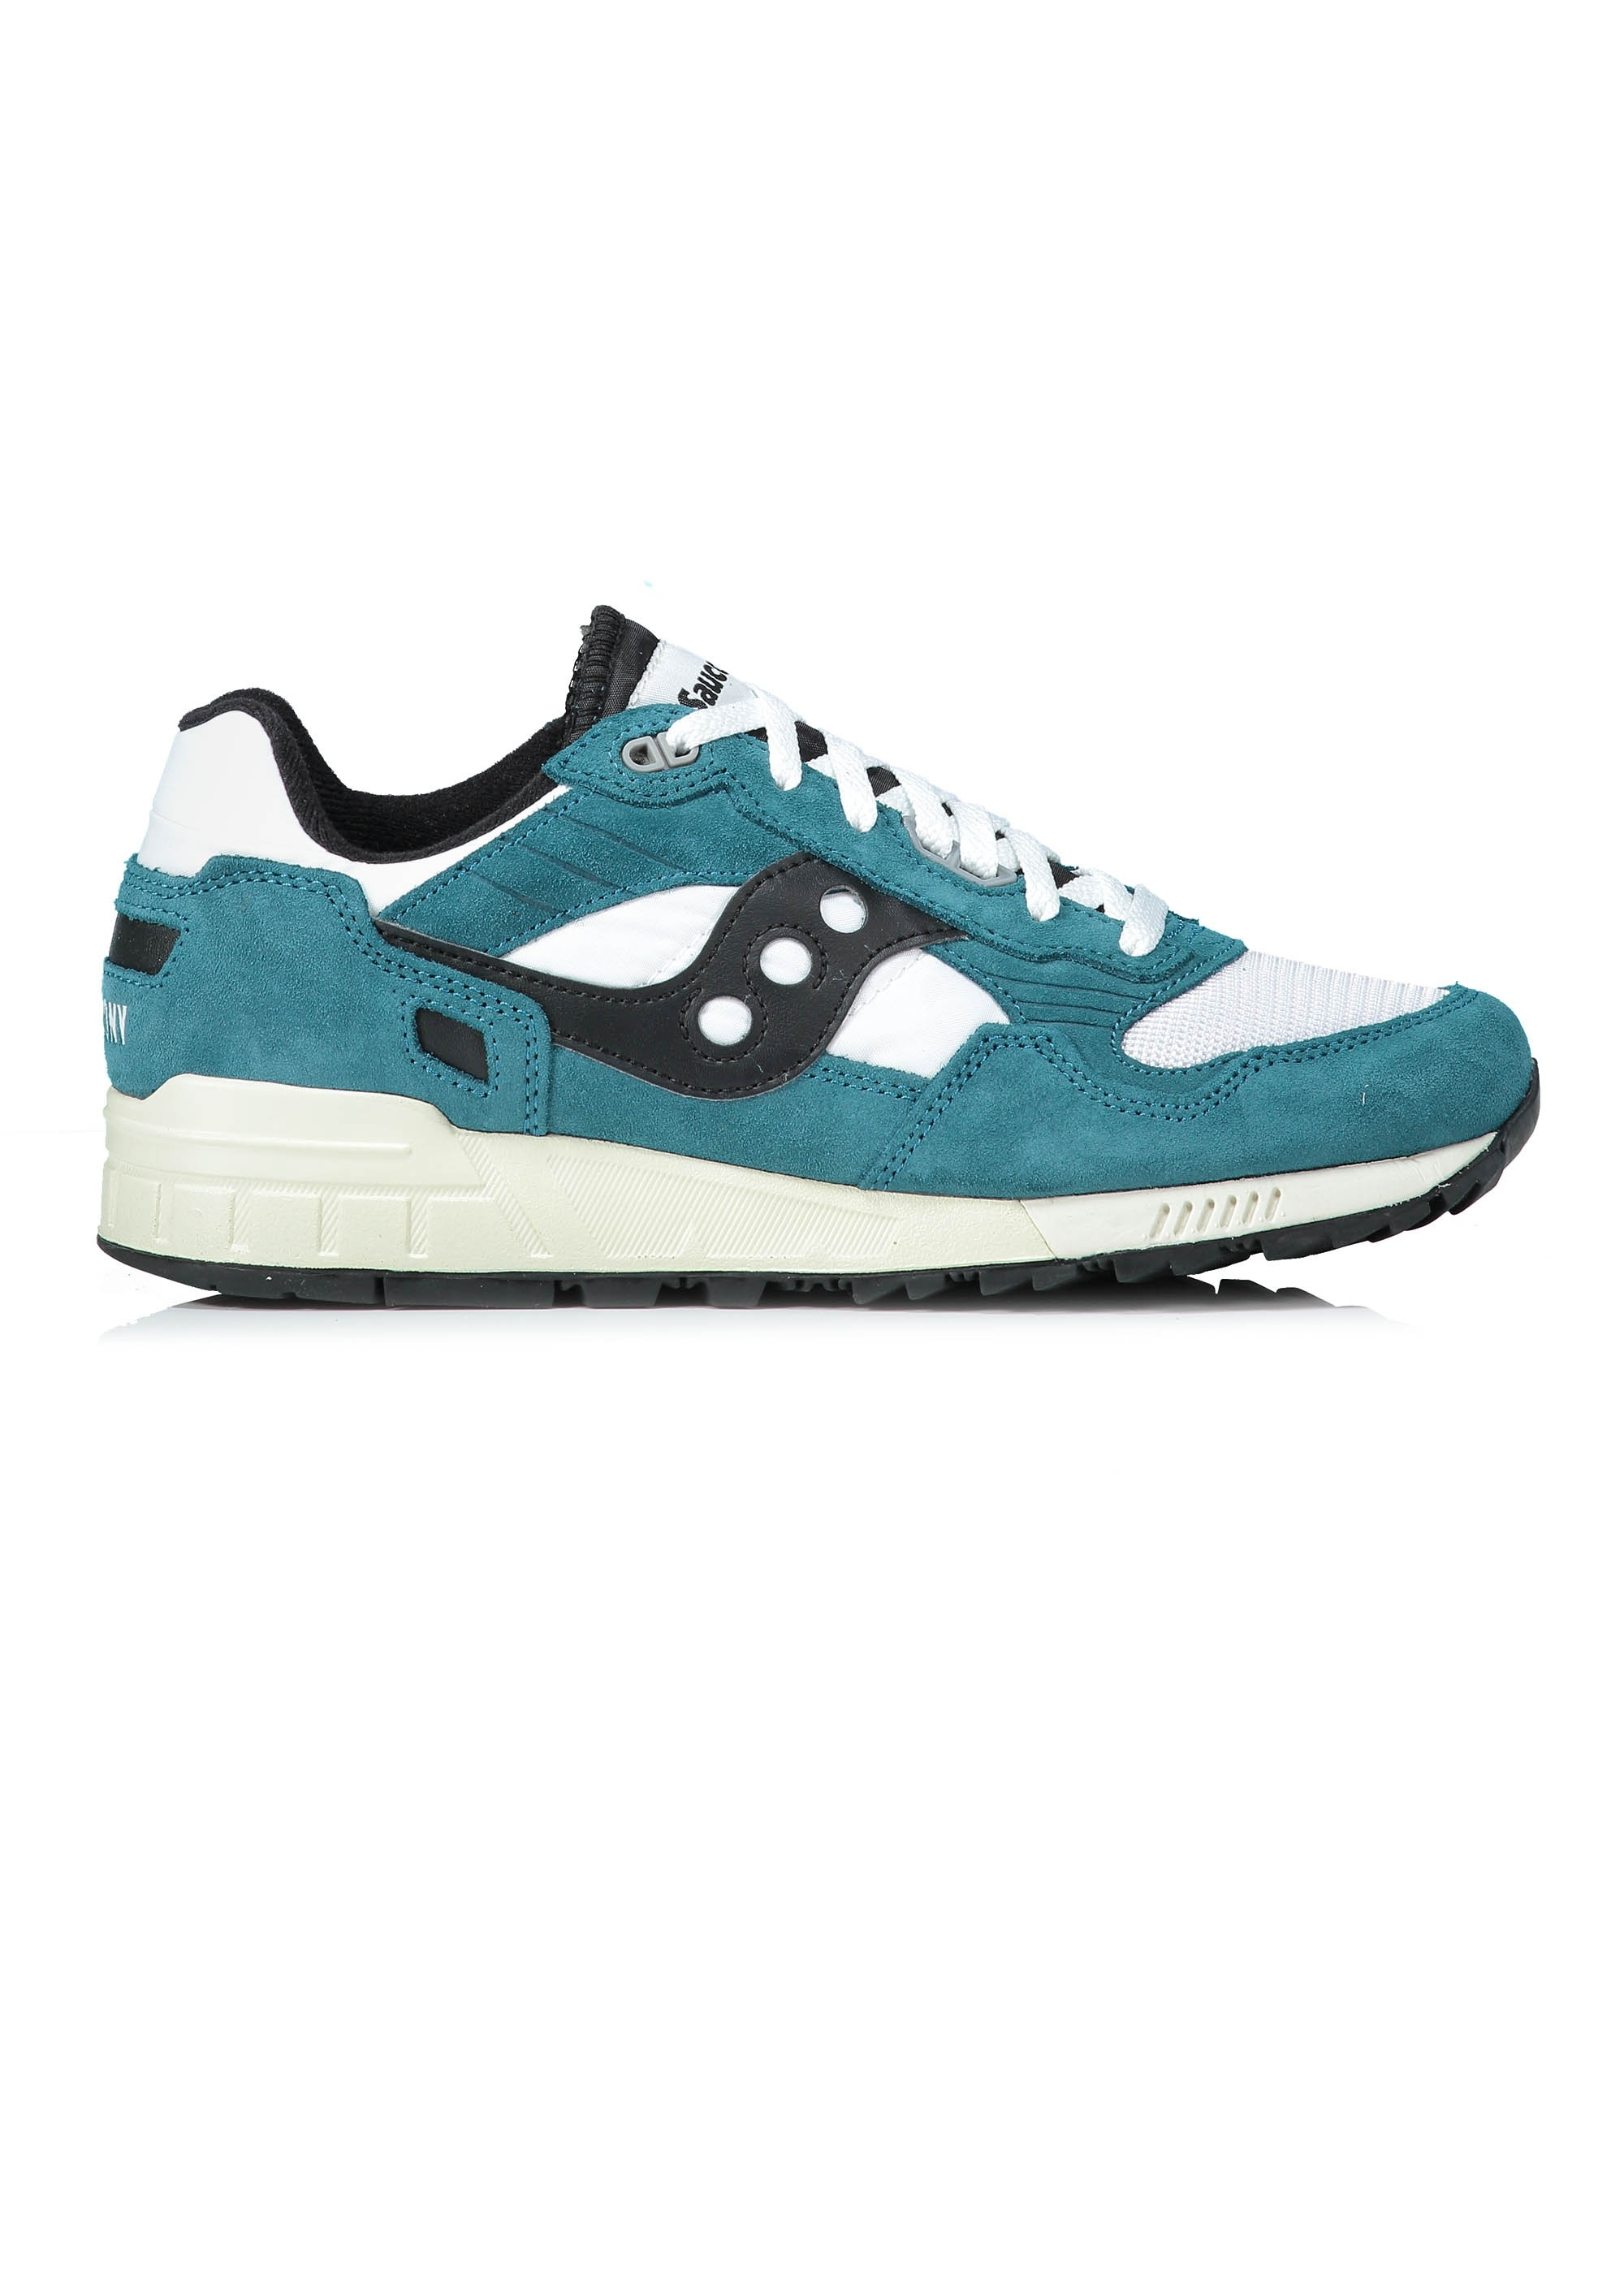 new arrival 6144c 5e2b5 Saucony Shadow 5000 Vintage - Teal / White